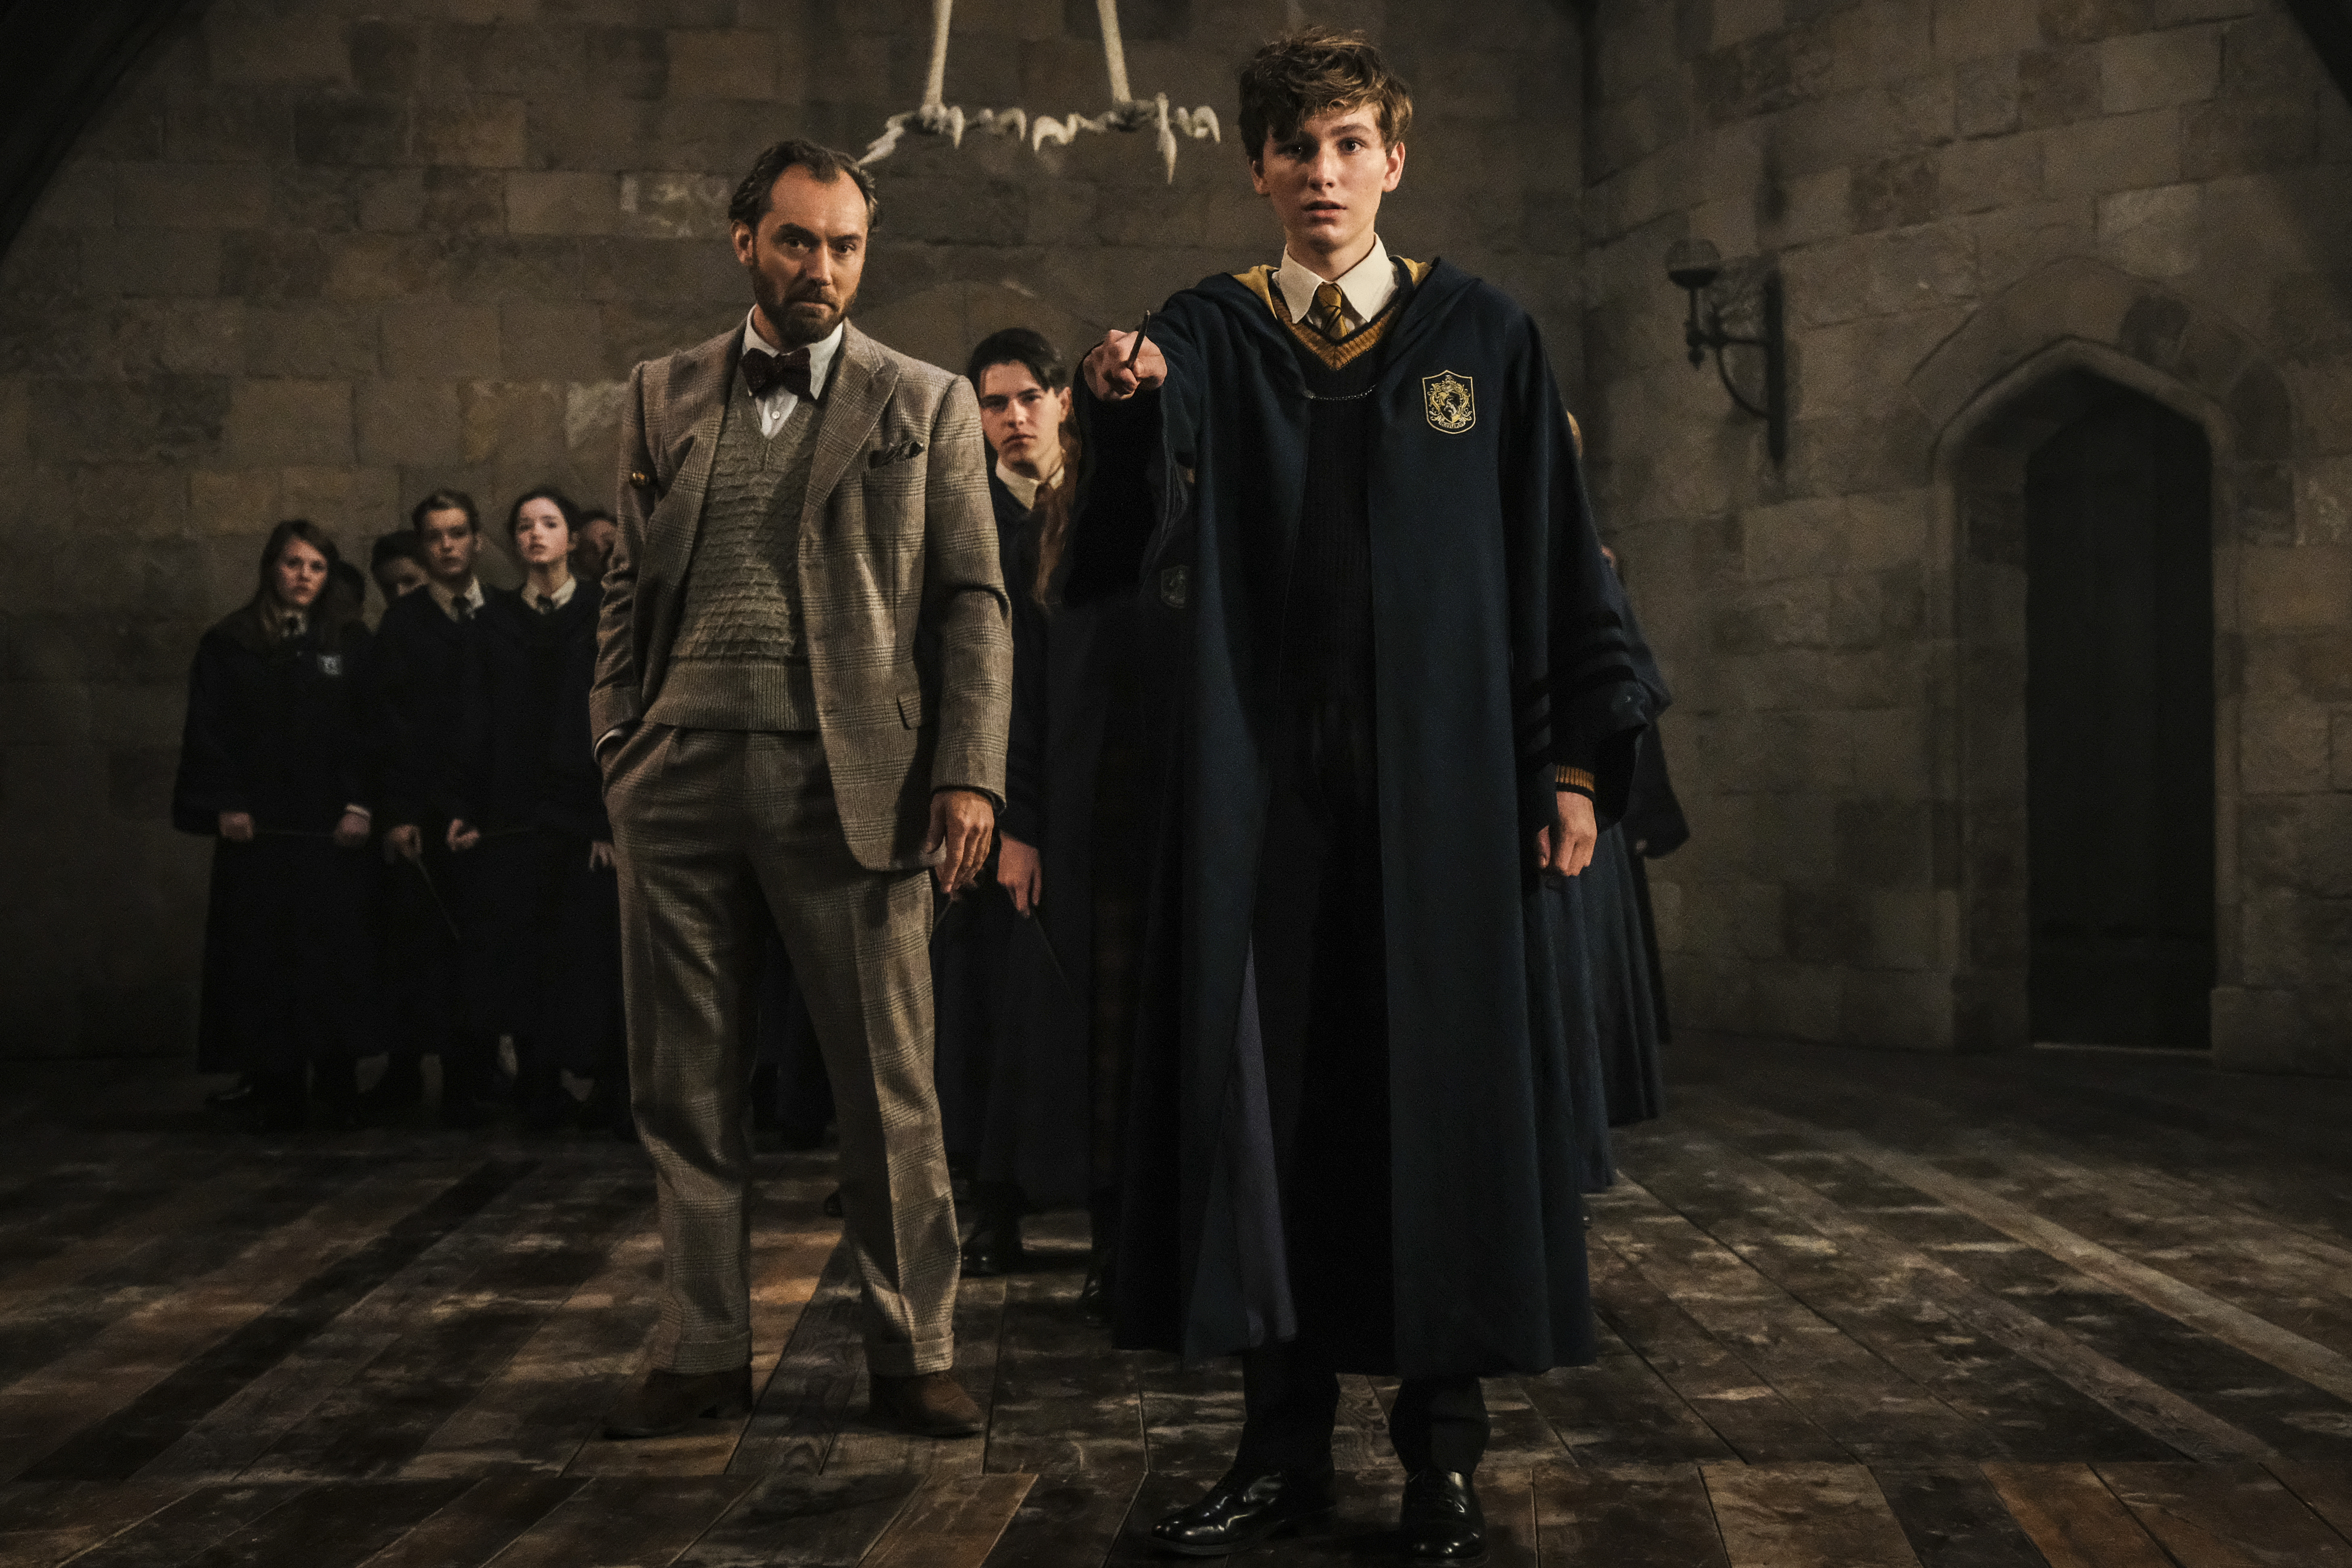 Albus Dumbledore, Newt Scamander, and others in Defense Against the Dark Arts class